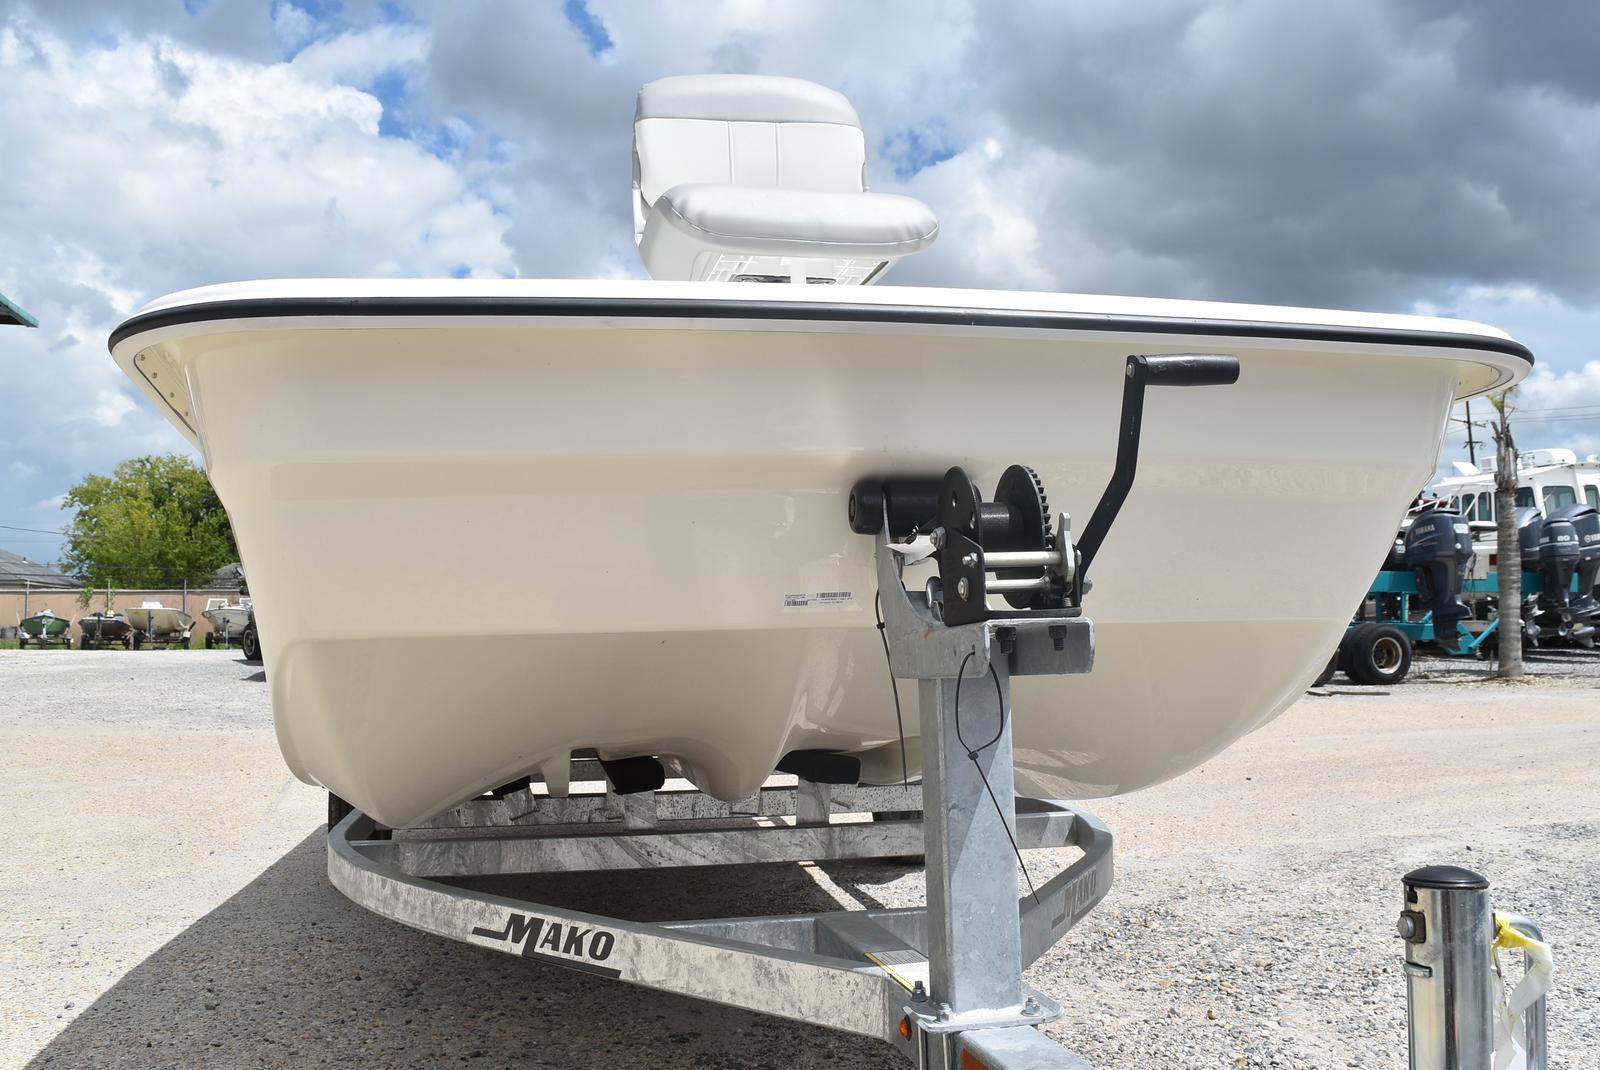 2020 Mako boat for sale, model of the boat is Pro Skiff 17, 75 ELPT & Image # 383 of 702